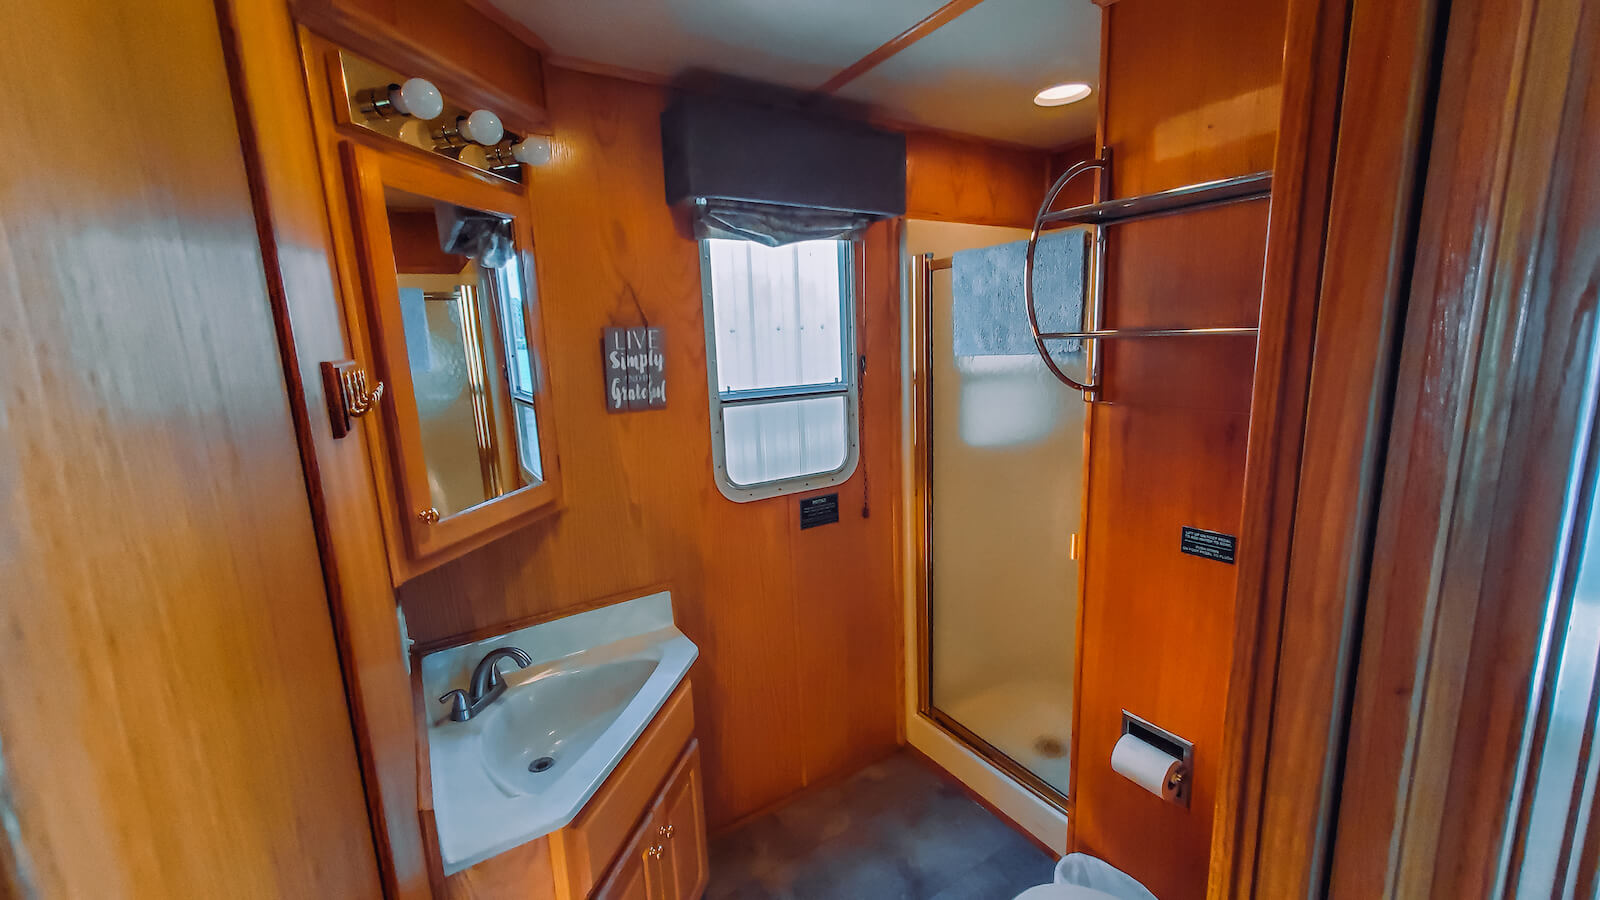 Bathroom in the S&S Rentals Riverview 62' houseboat